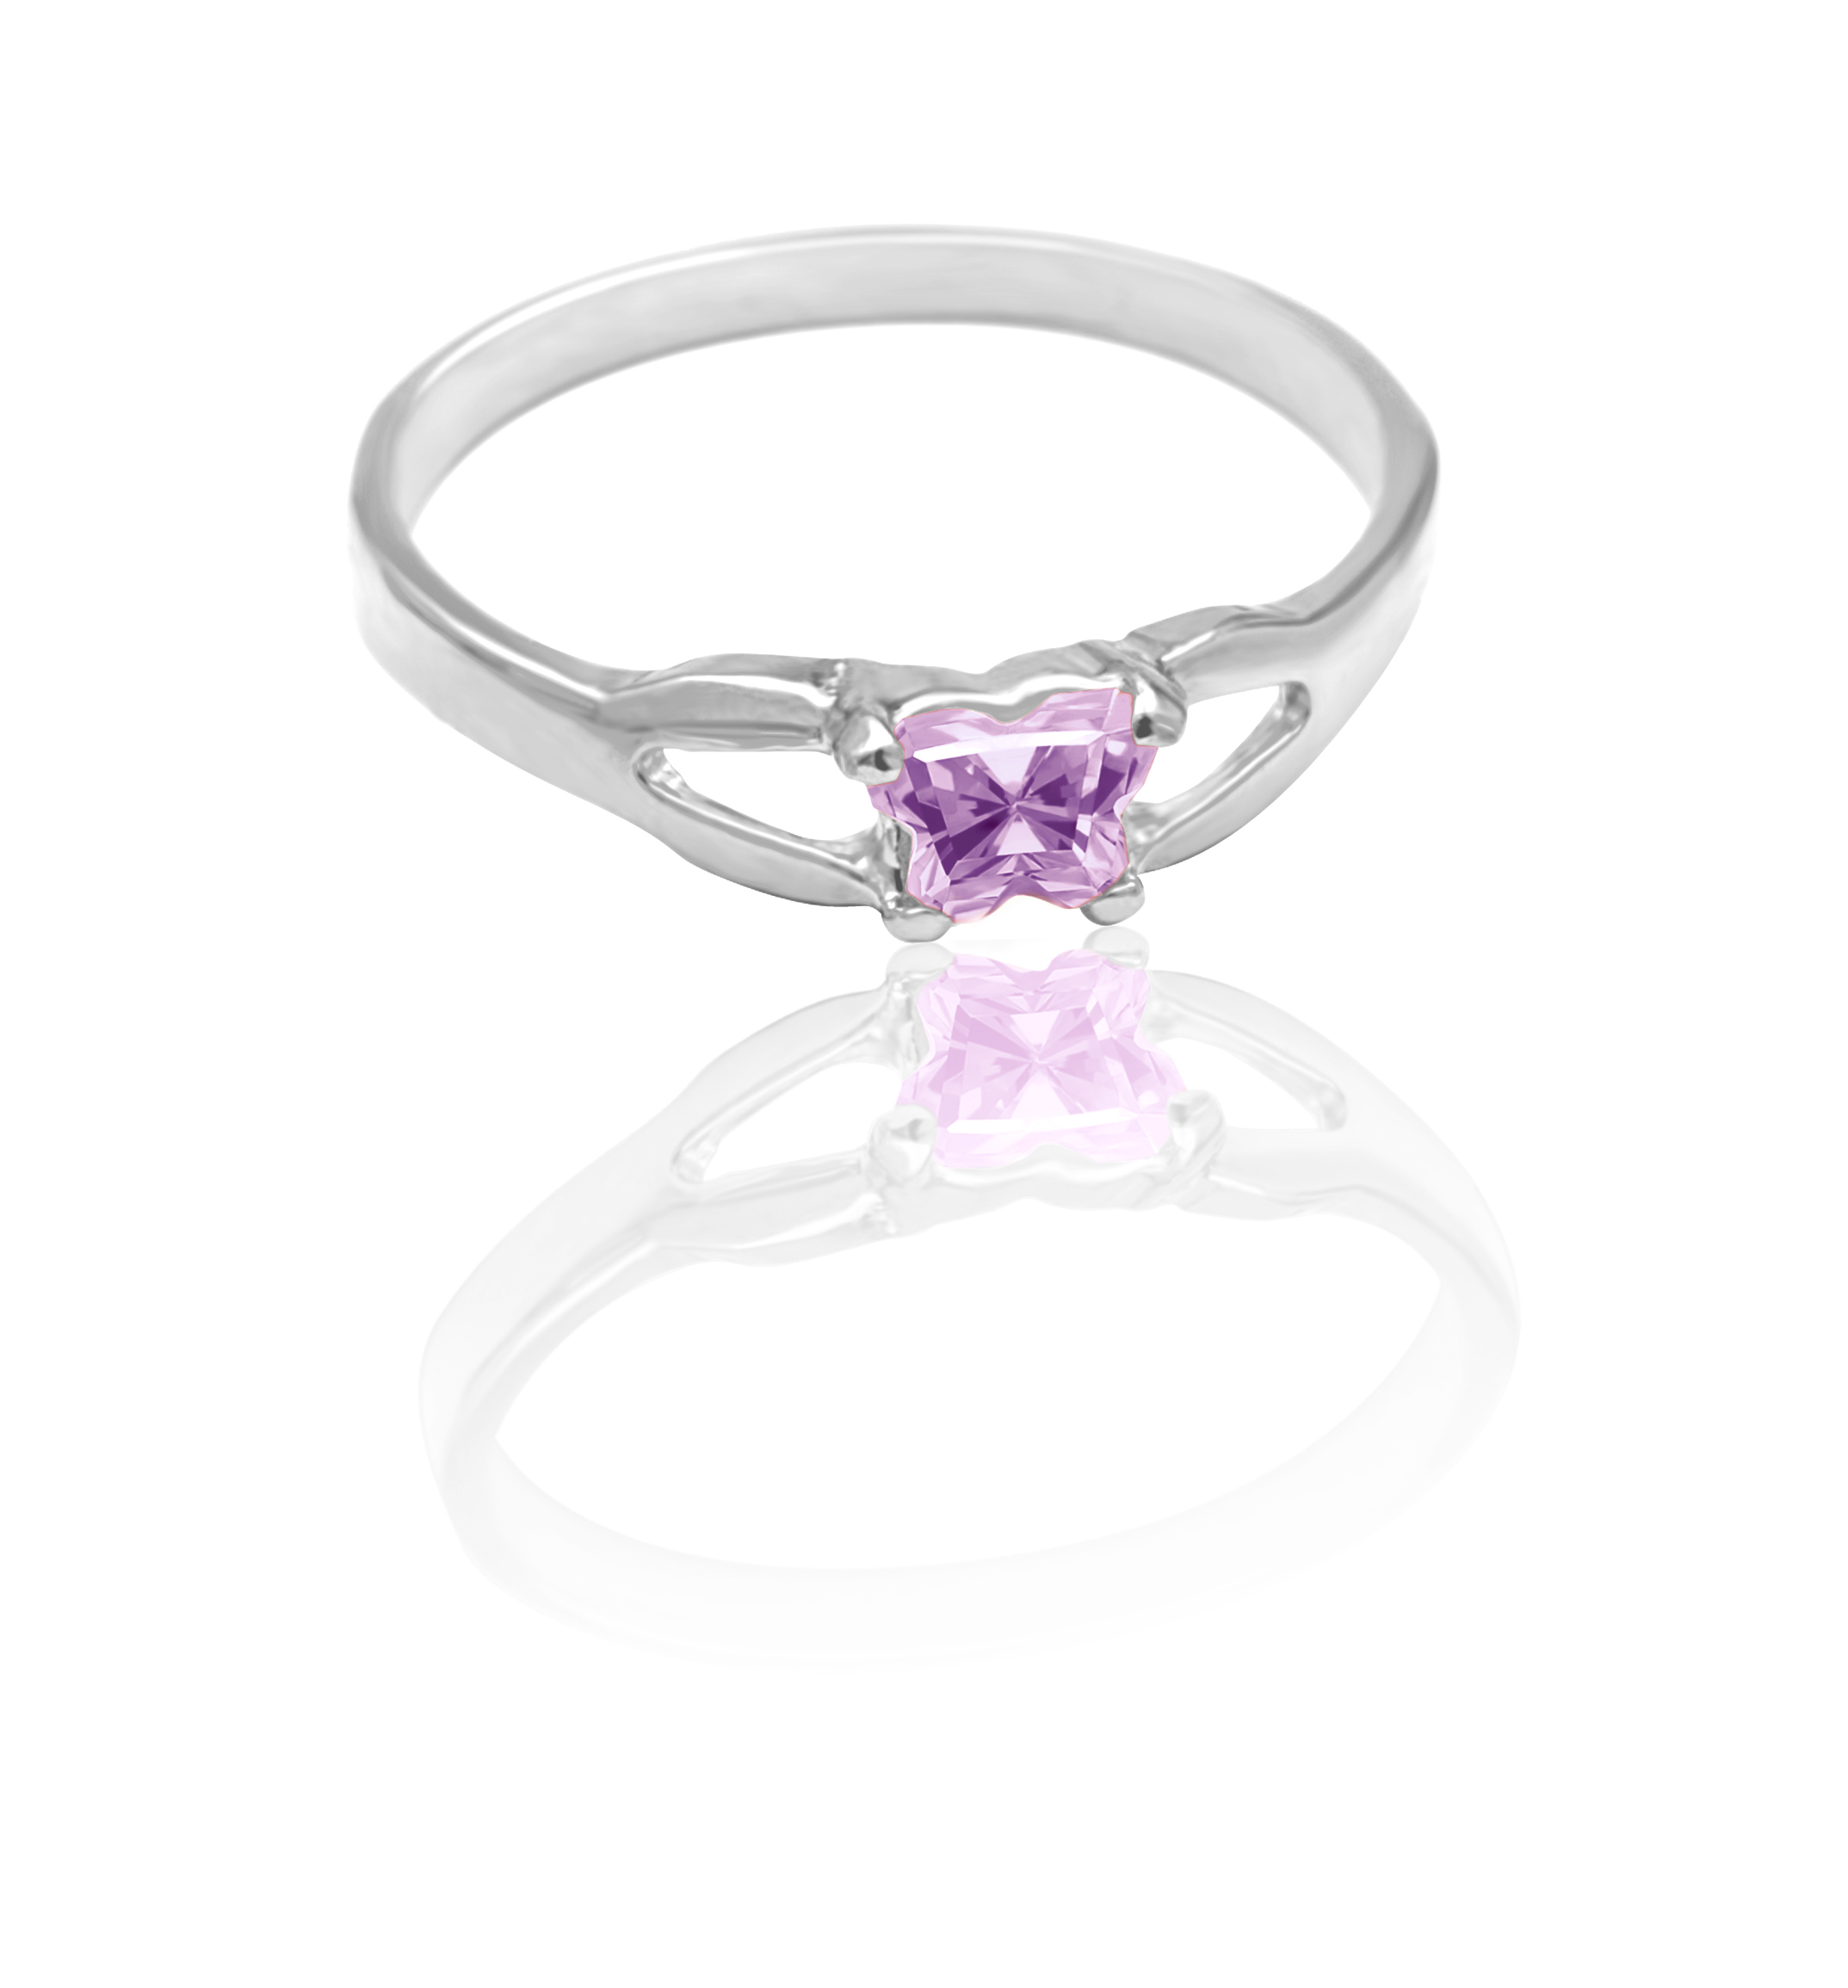 children ring in sterling silver with lilac cubic zirconia (month of June)*